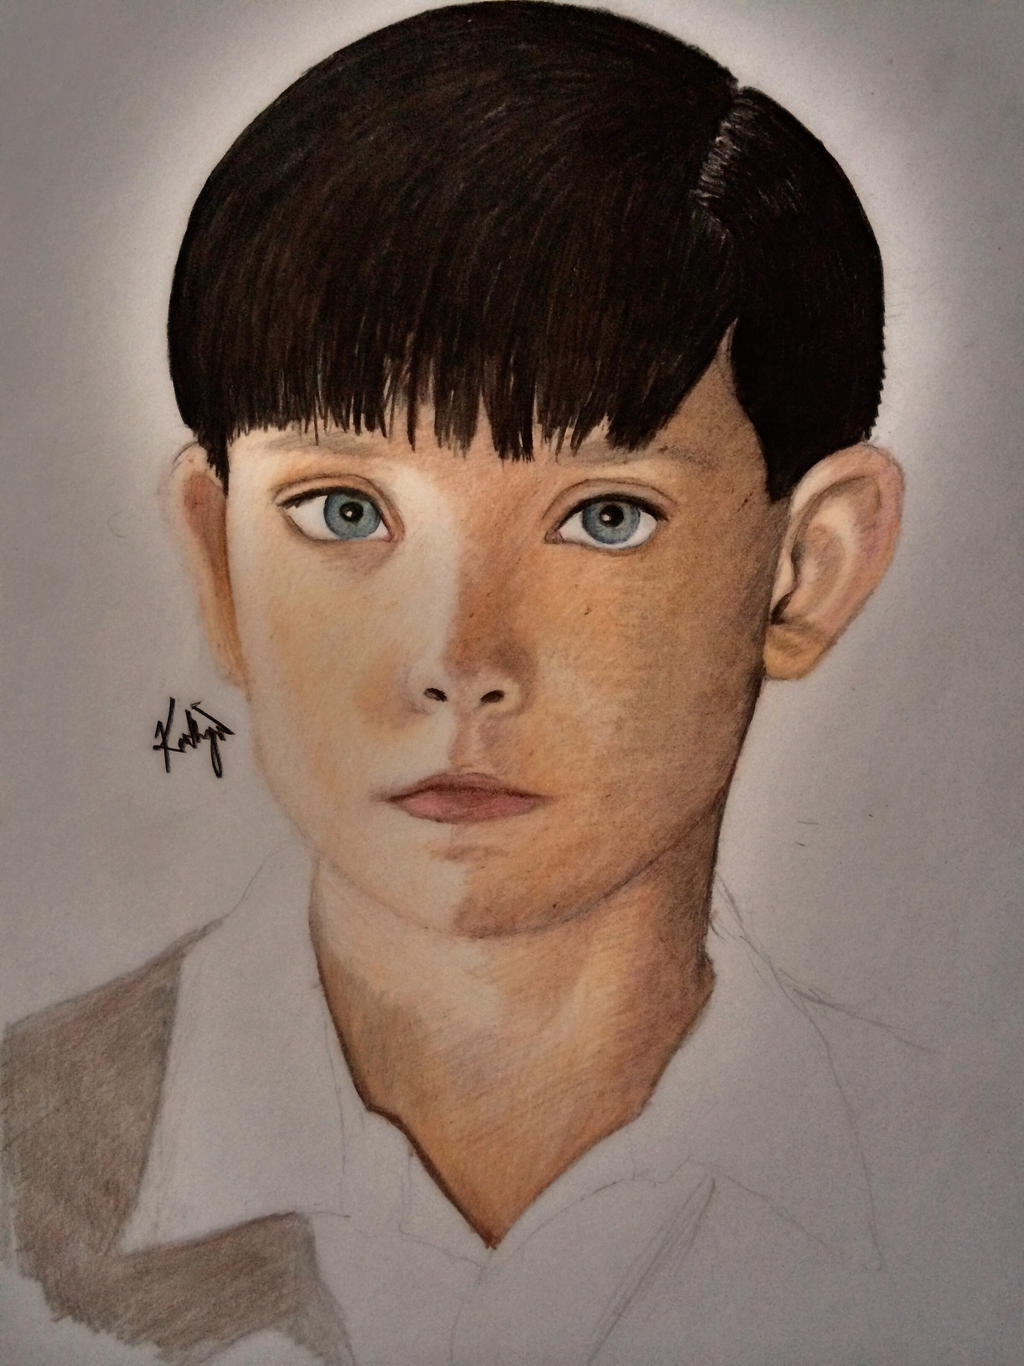 Bruno From The Boy In The Striped Pajamas By Mistressasylum On Deviantart